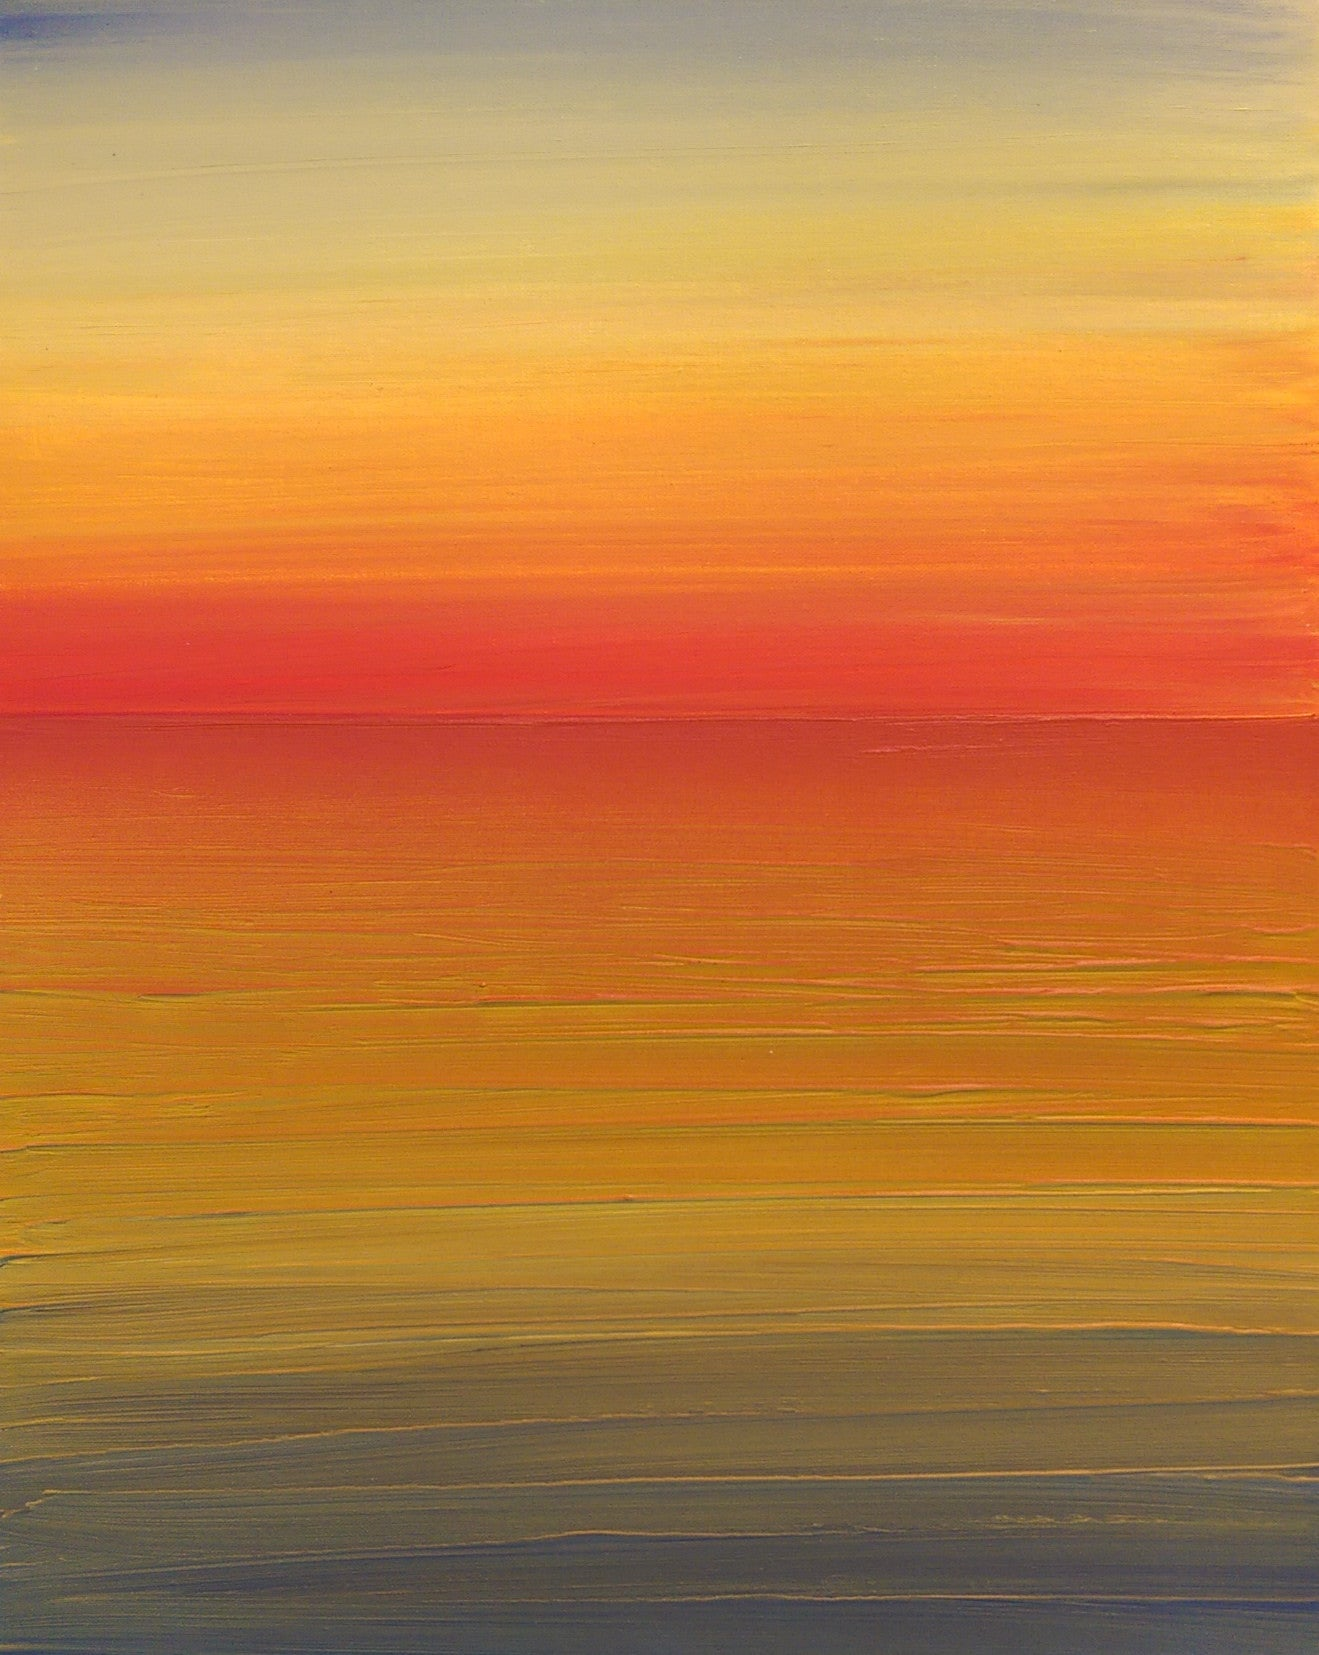 Abstract Seascape on canvas - Shepherds Delight